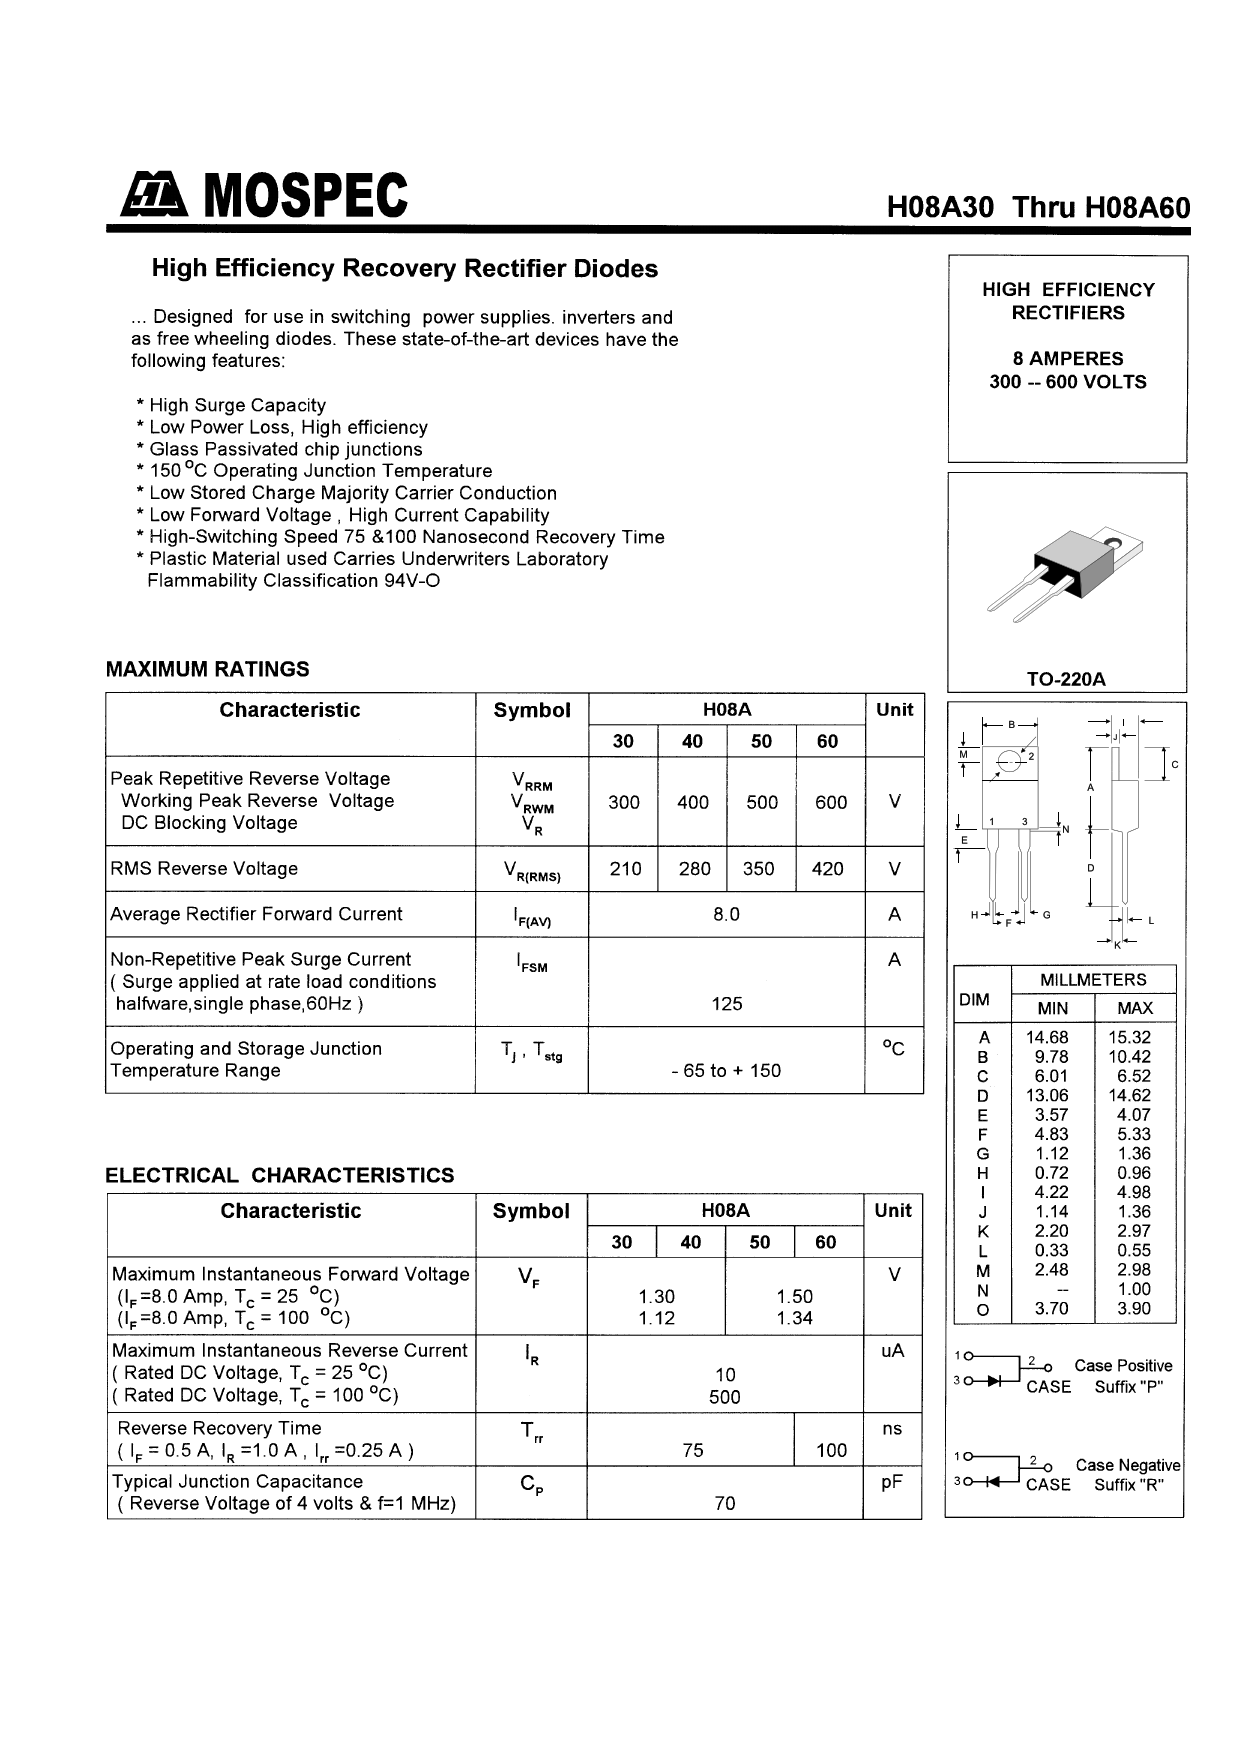 H08A40 Hoja de datos, Descripción, Manual